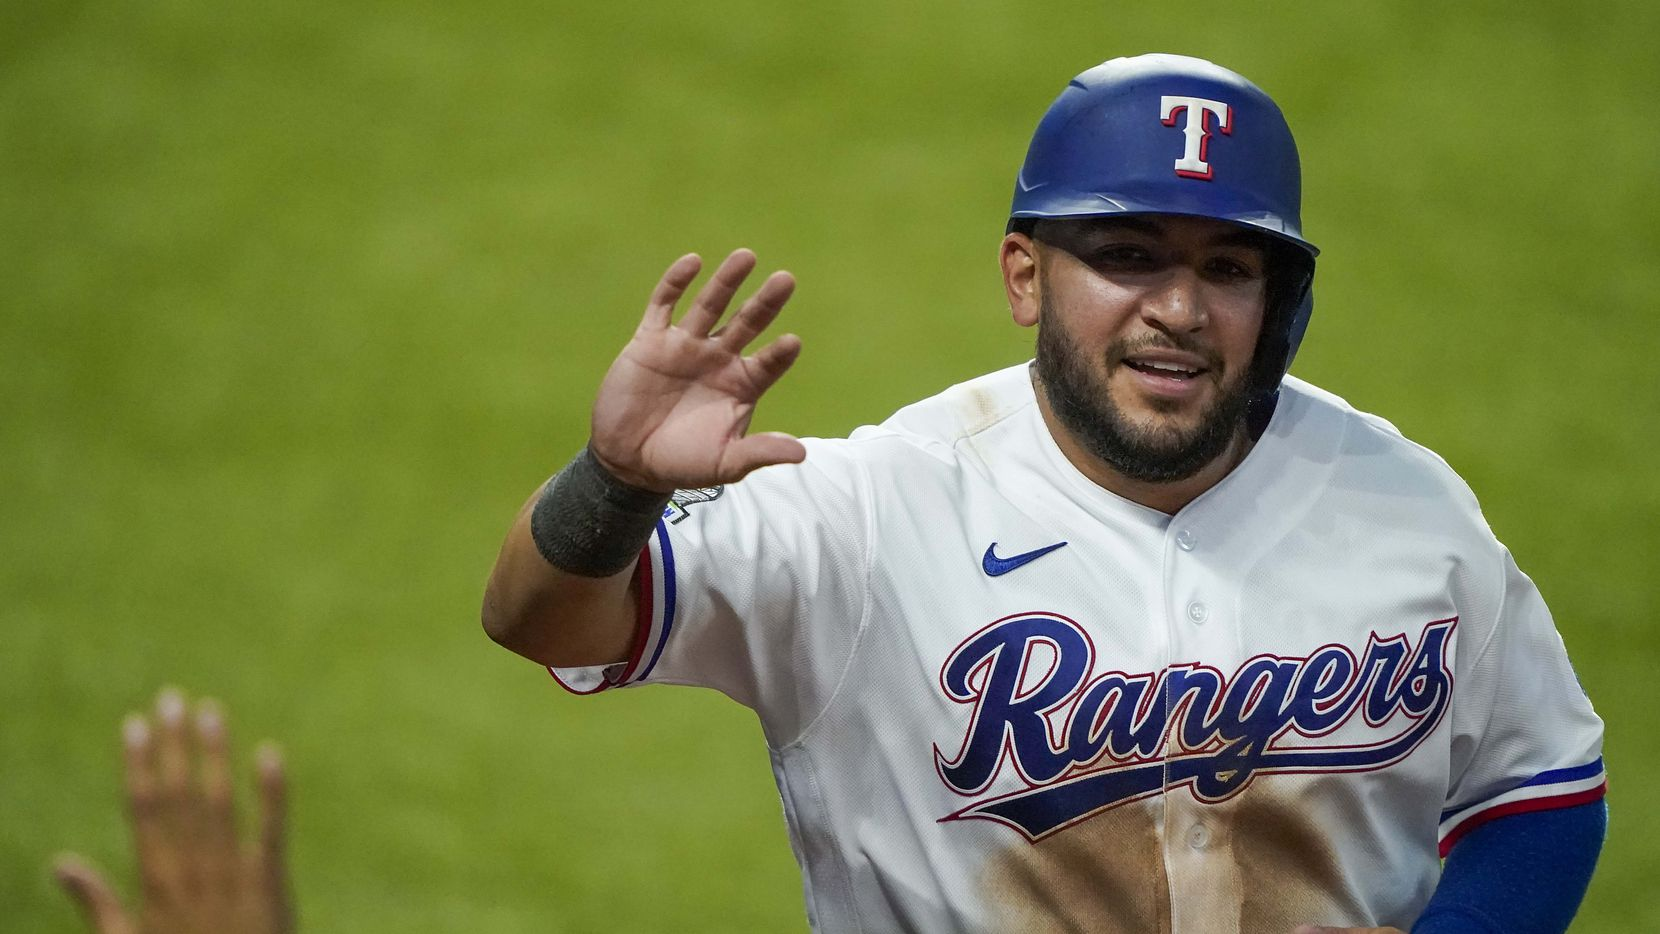 Catcher Jose Trevino celebrates after scoring a run in an intrasquad game during Texas Rangers Summer Camp at Globe Life Field on Saturday, July 18, 2020.